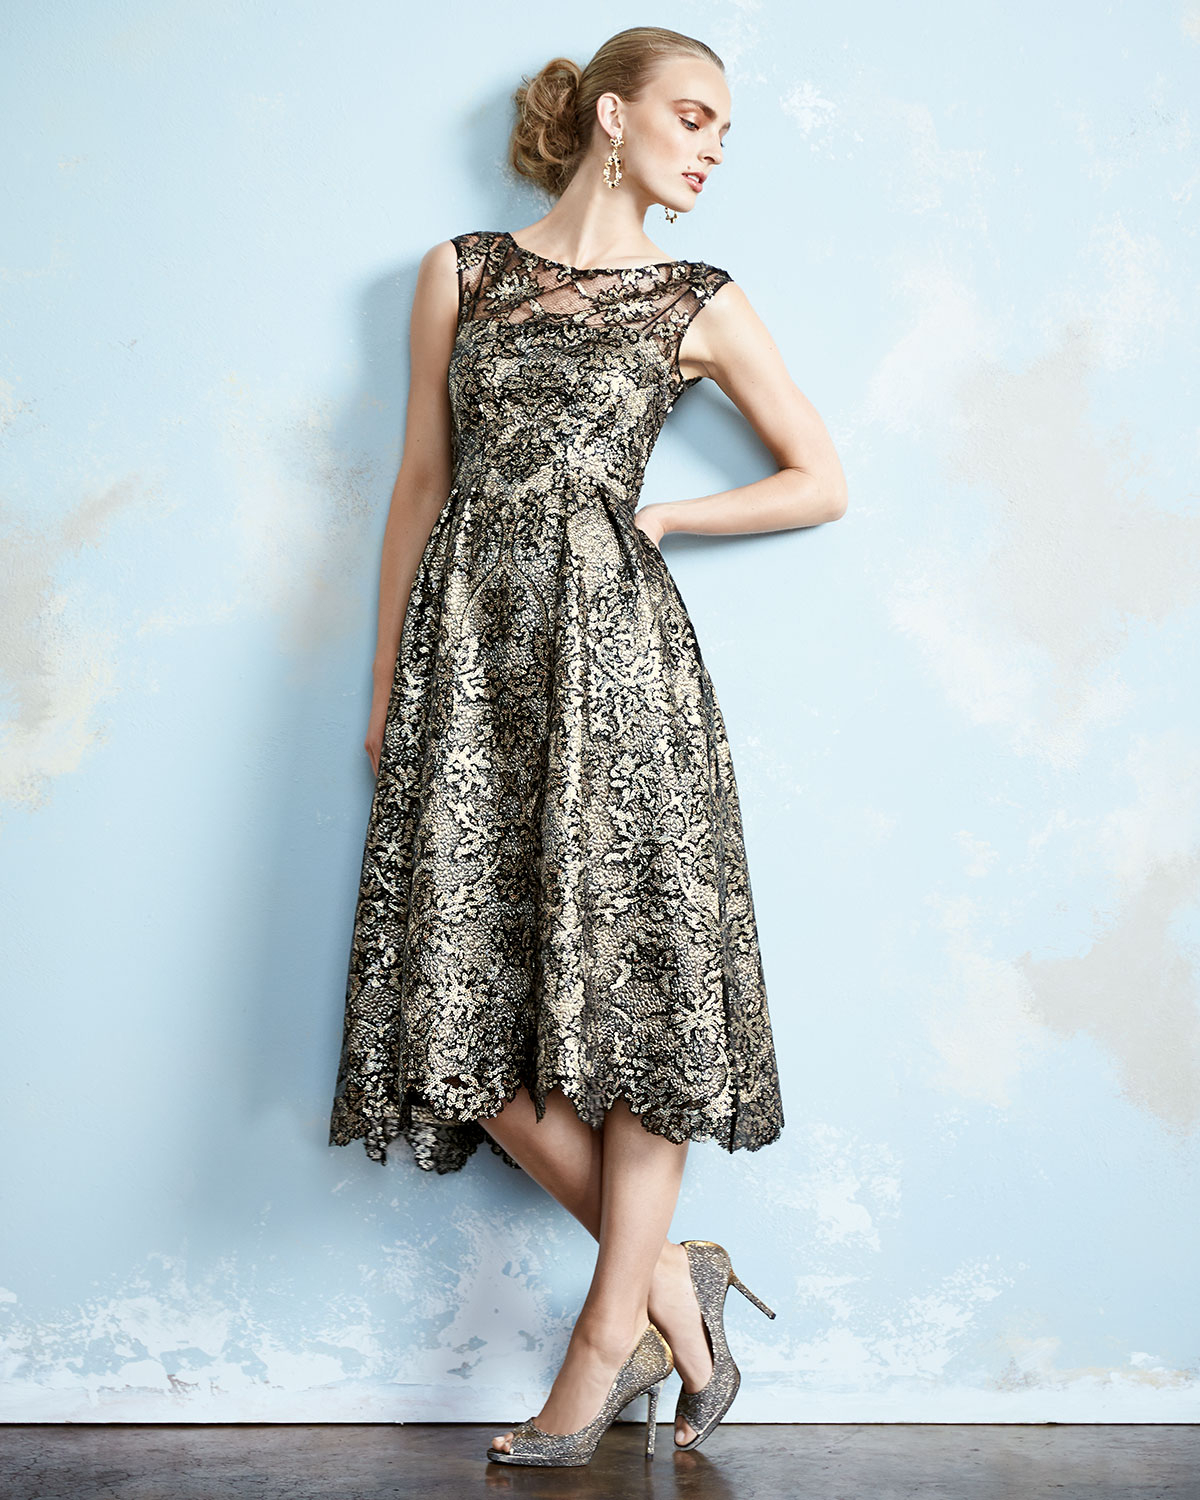 Lyst - Kay Unger Sleeveless Lace Tea-length Cocktail Dress in Metallic